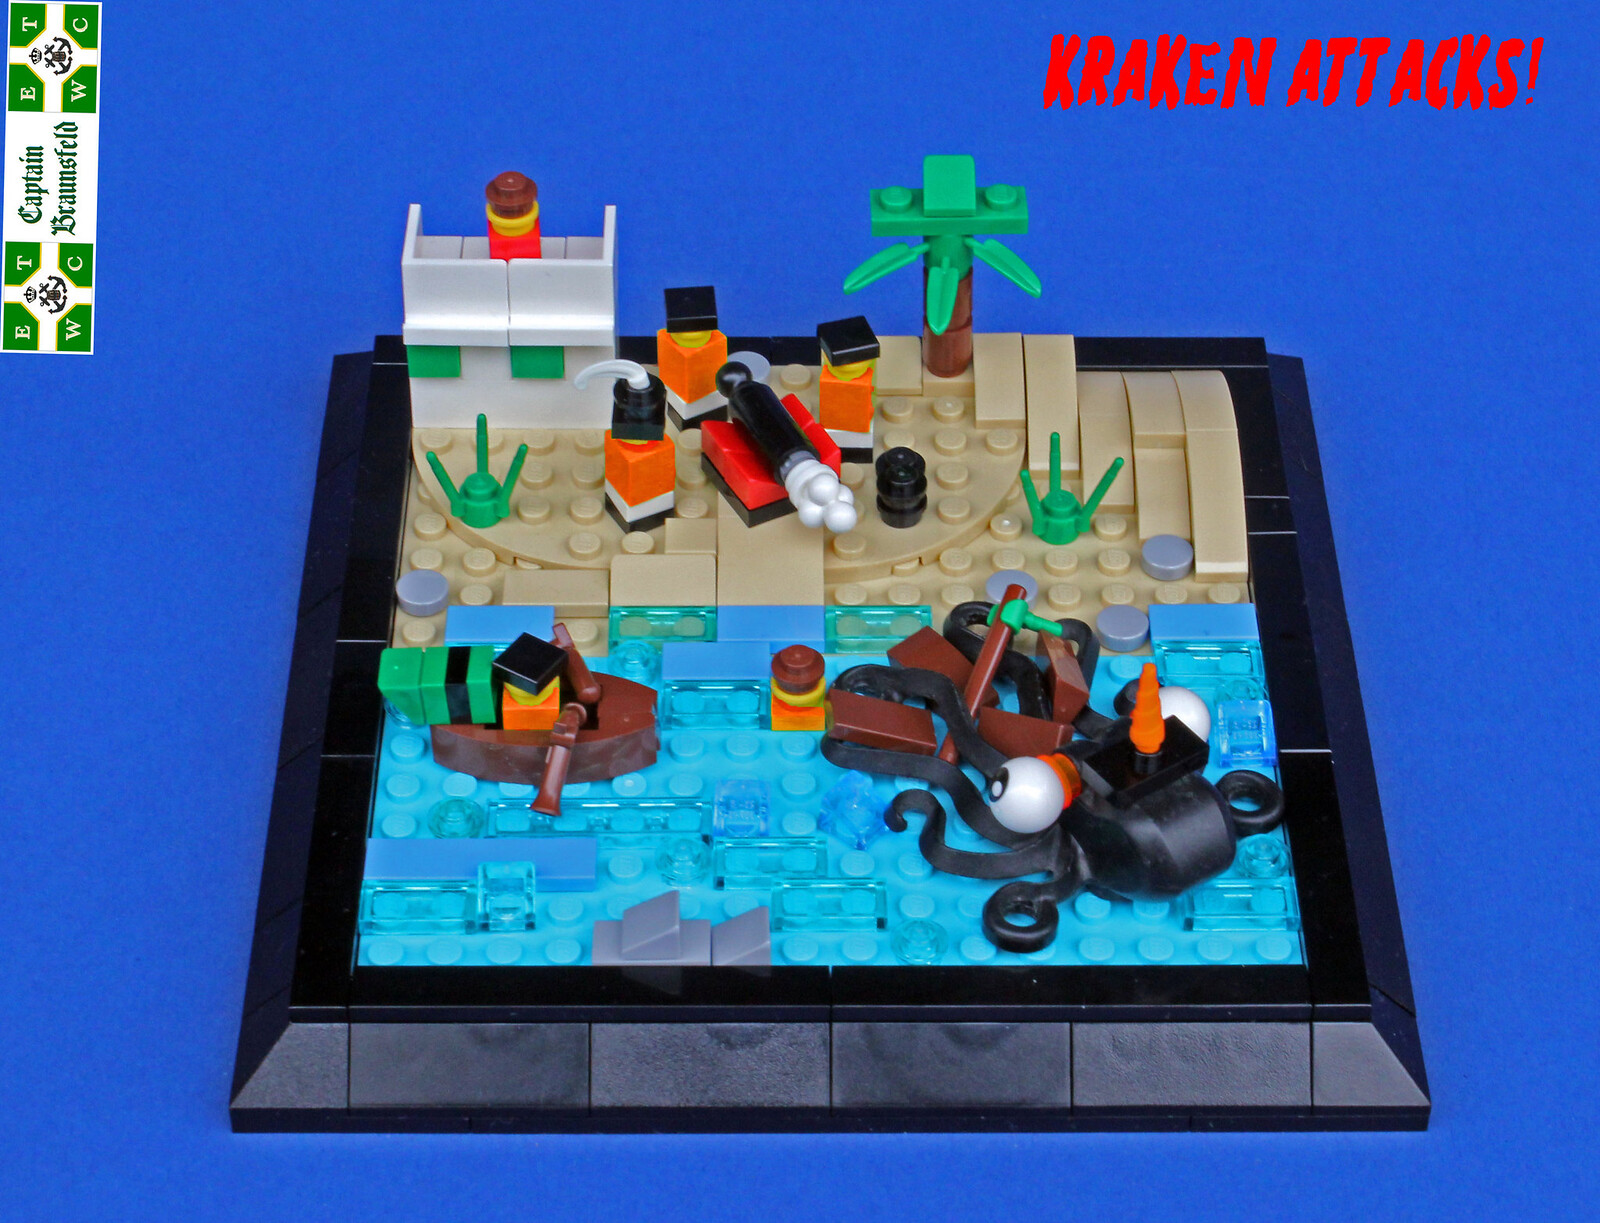 THE KRAKEN ATTACKS (custom built Lego model)